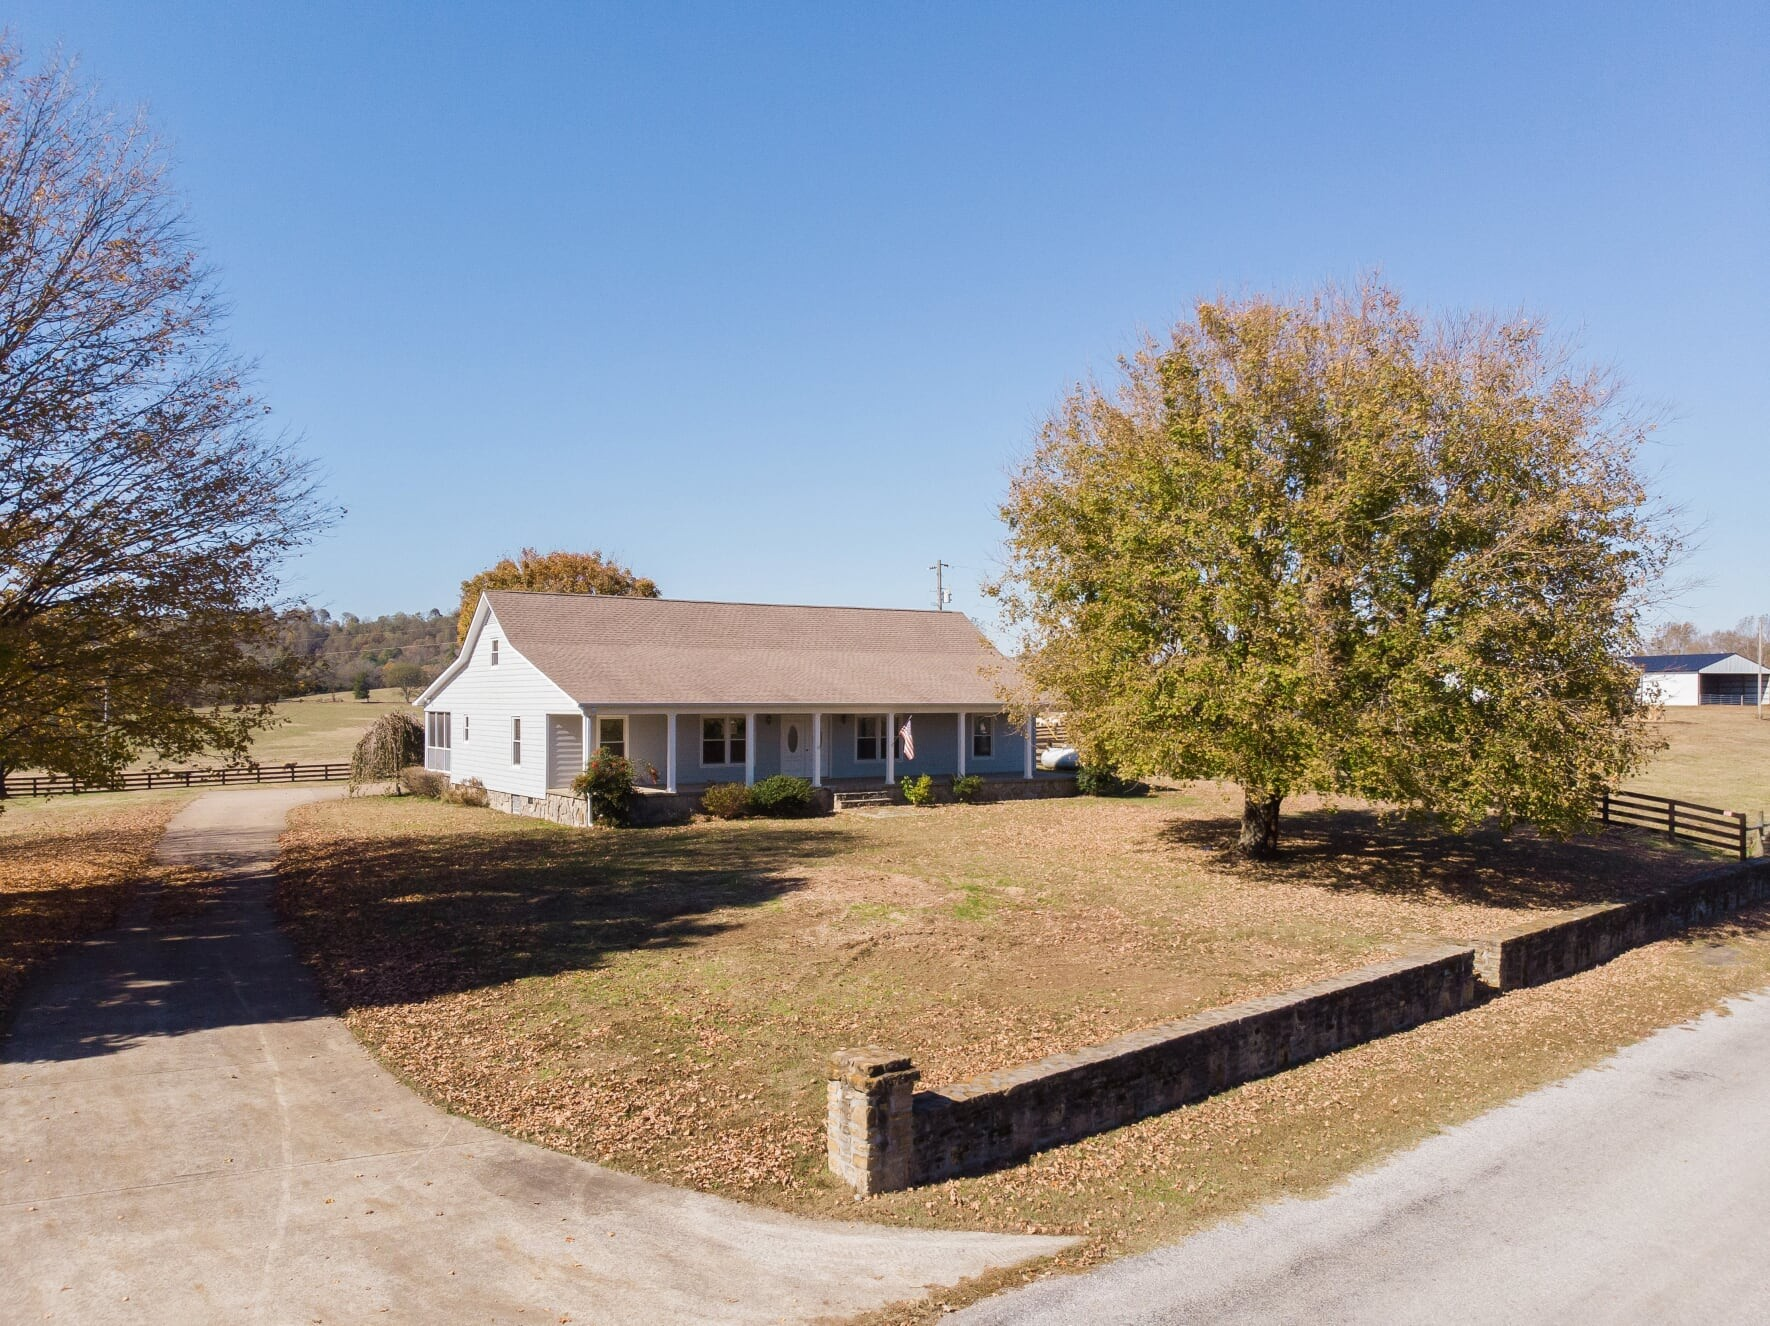 386 Creecy Hollow Rd, Pulaski, TN 38478 - Pulaski, TN real estate listing